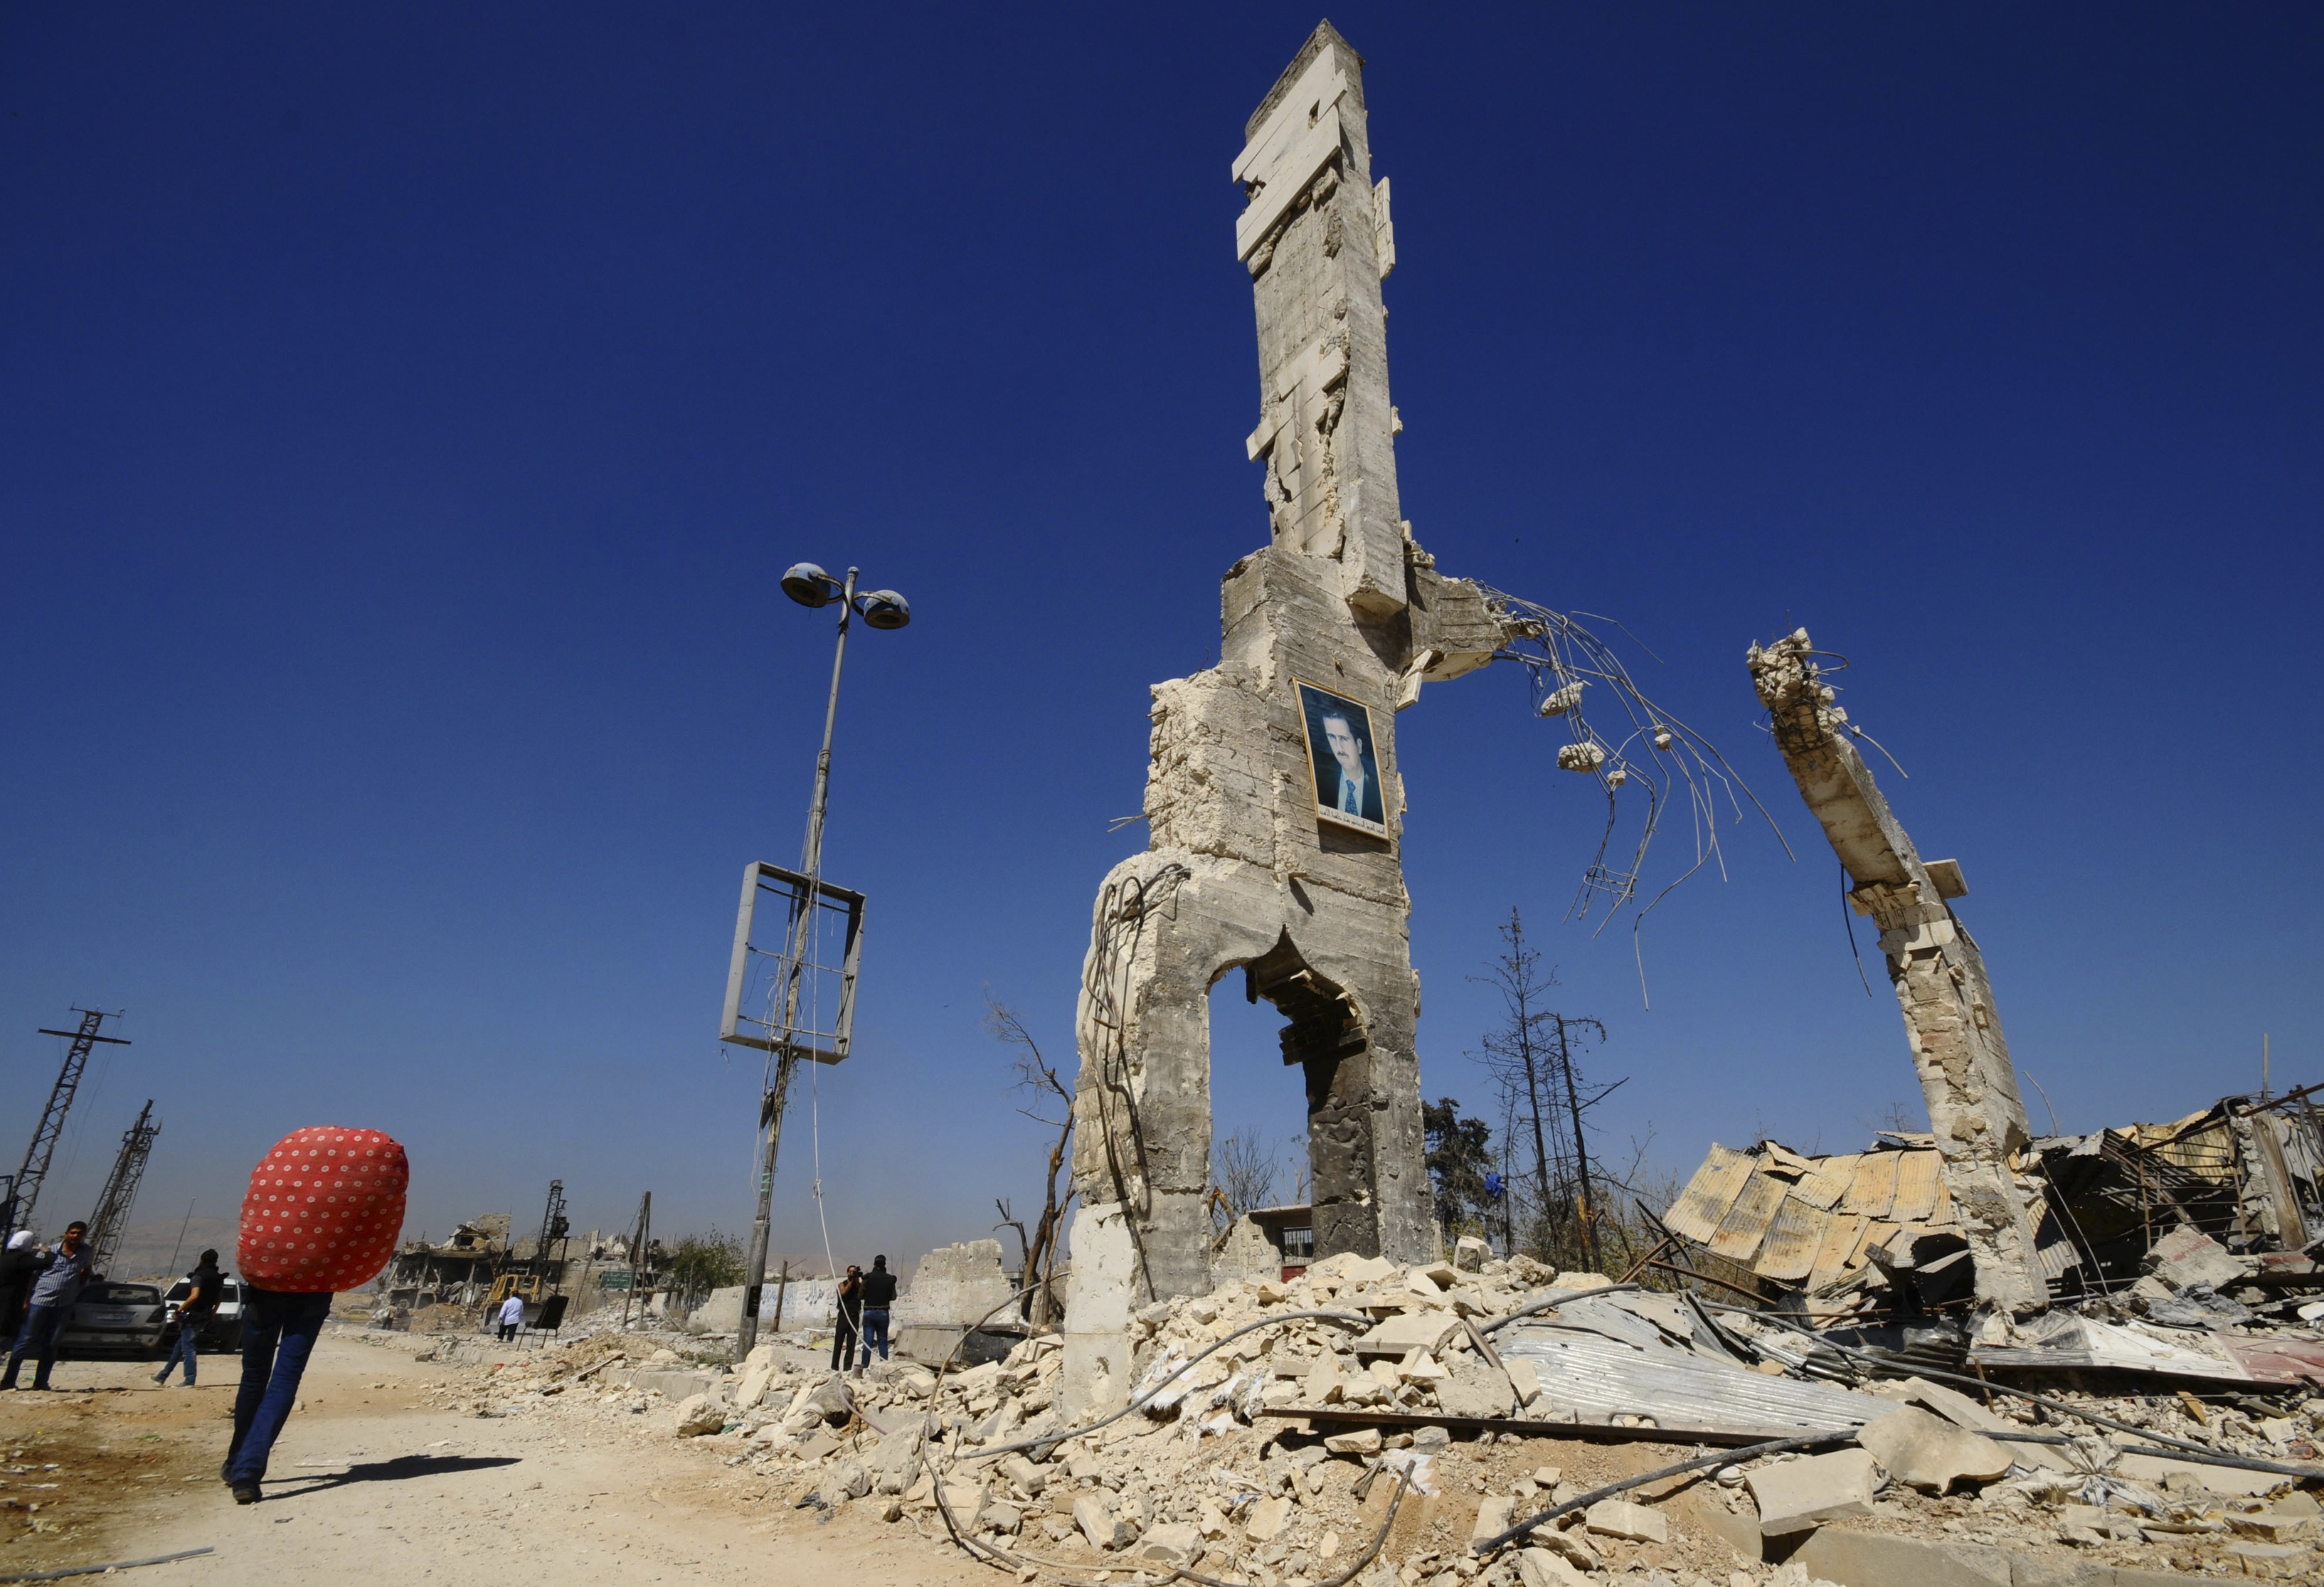 A picture of Syria's President Assad is displayed on a damaged structure at the entrance of al-Dukhaneya neighbourhood near Damascus